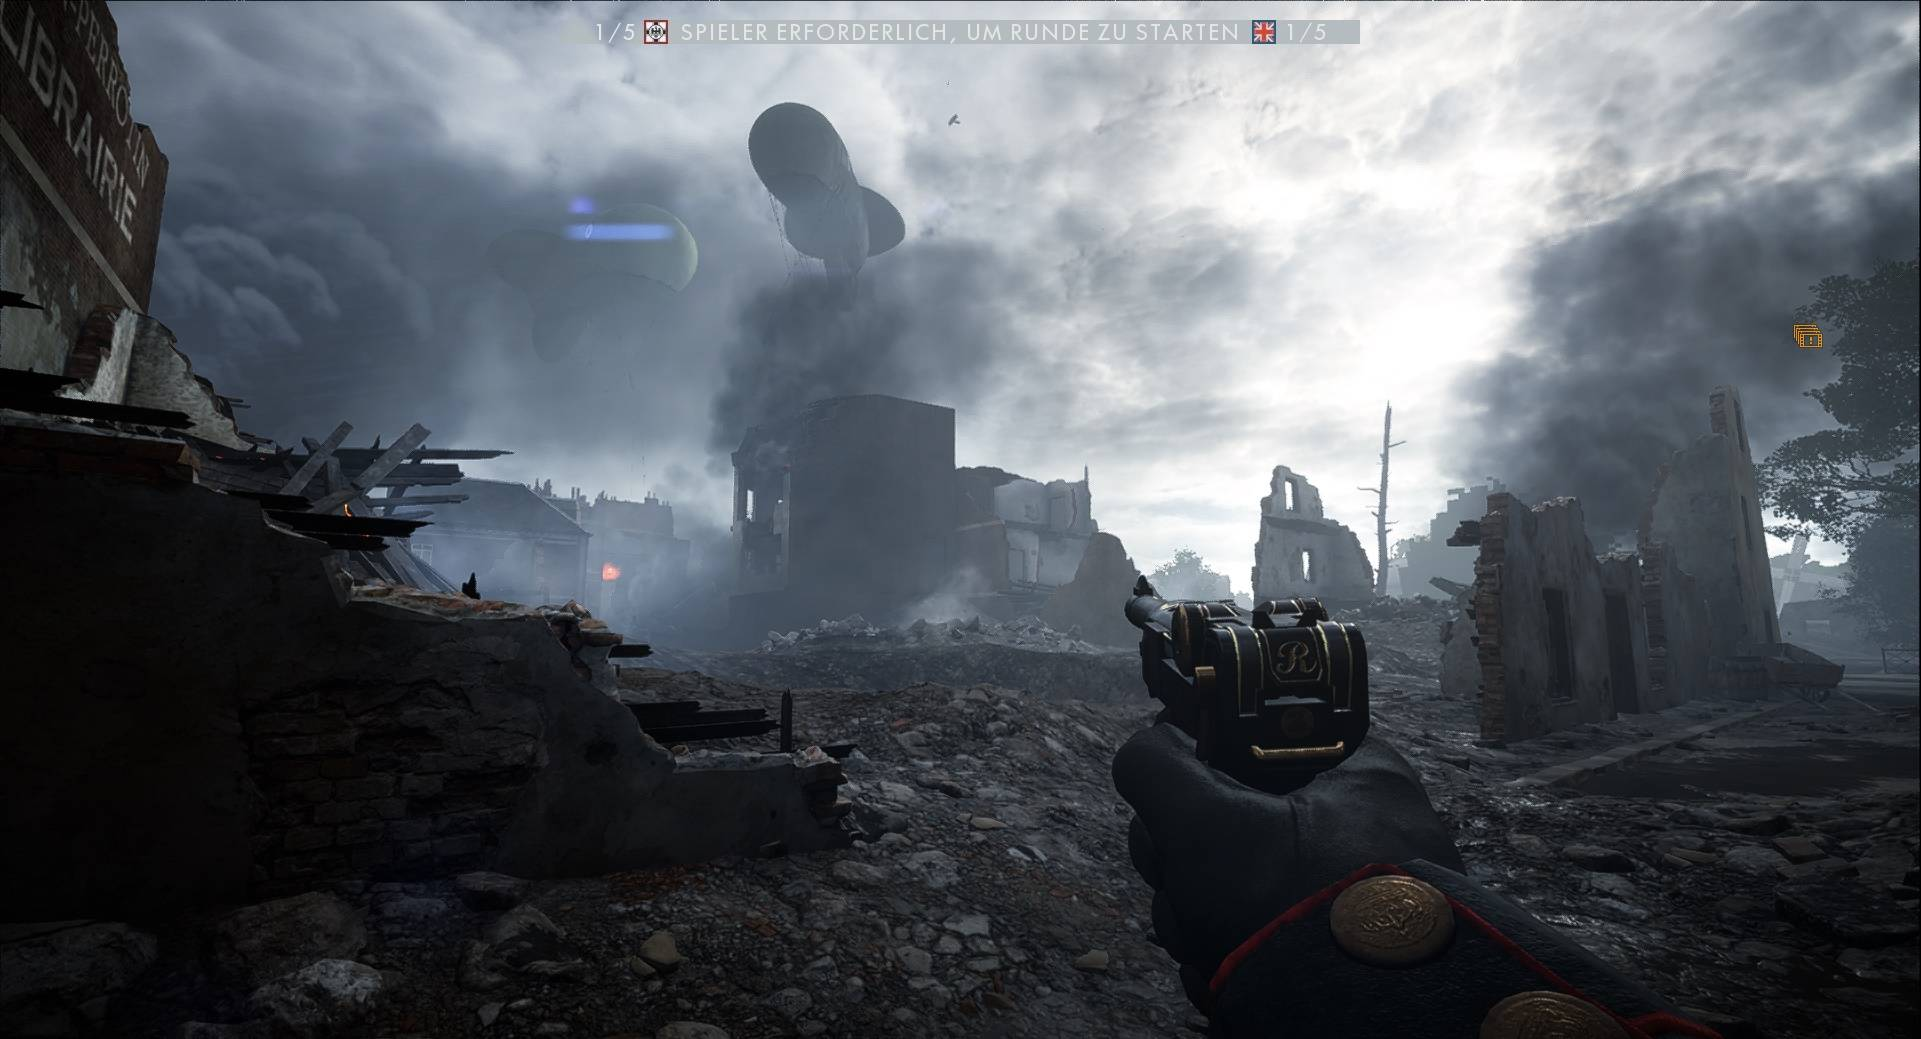 Battlefield 1 - Mutliplayer